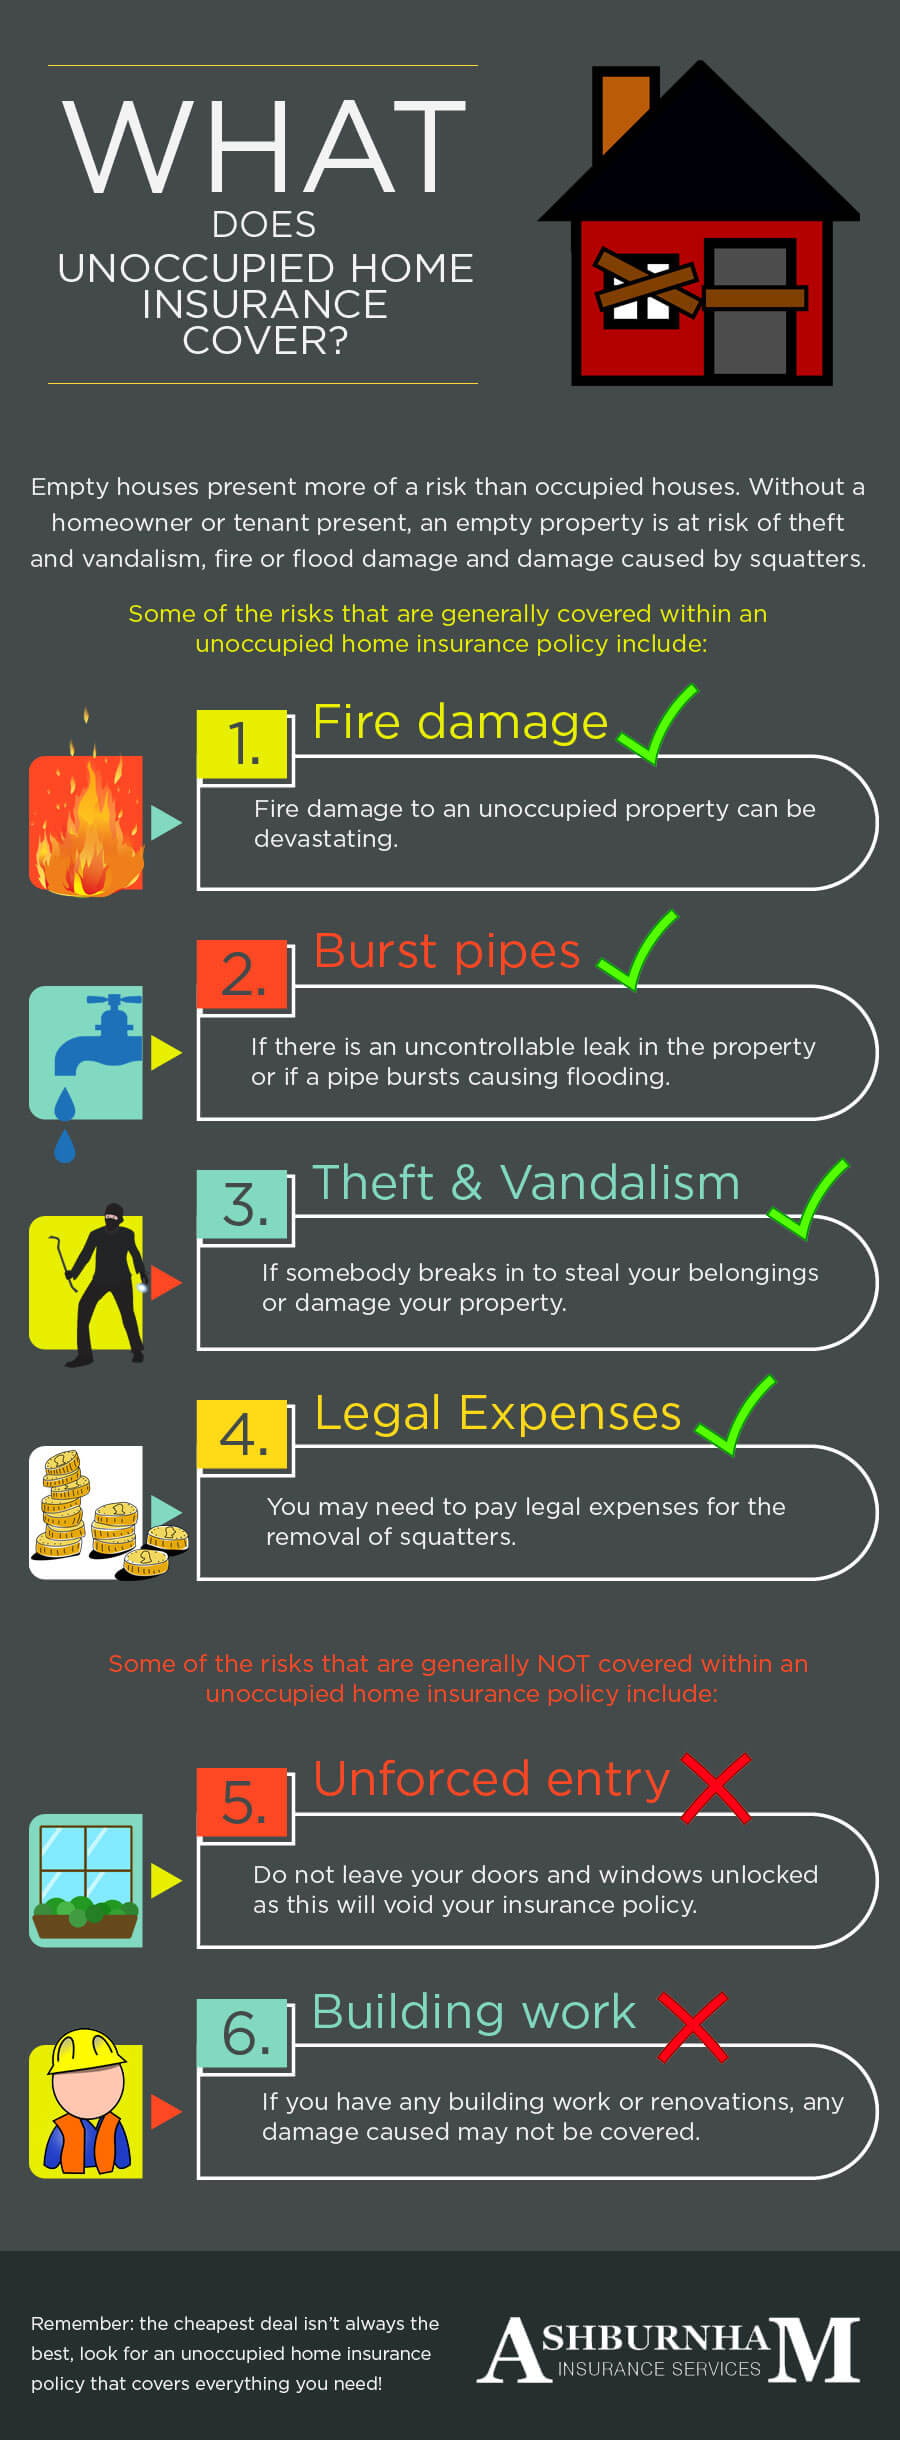 Unoccupied Home Insurance Infographic